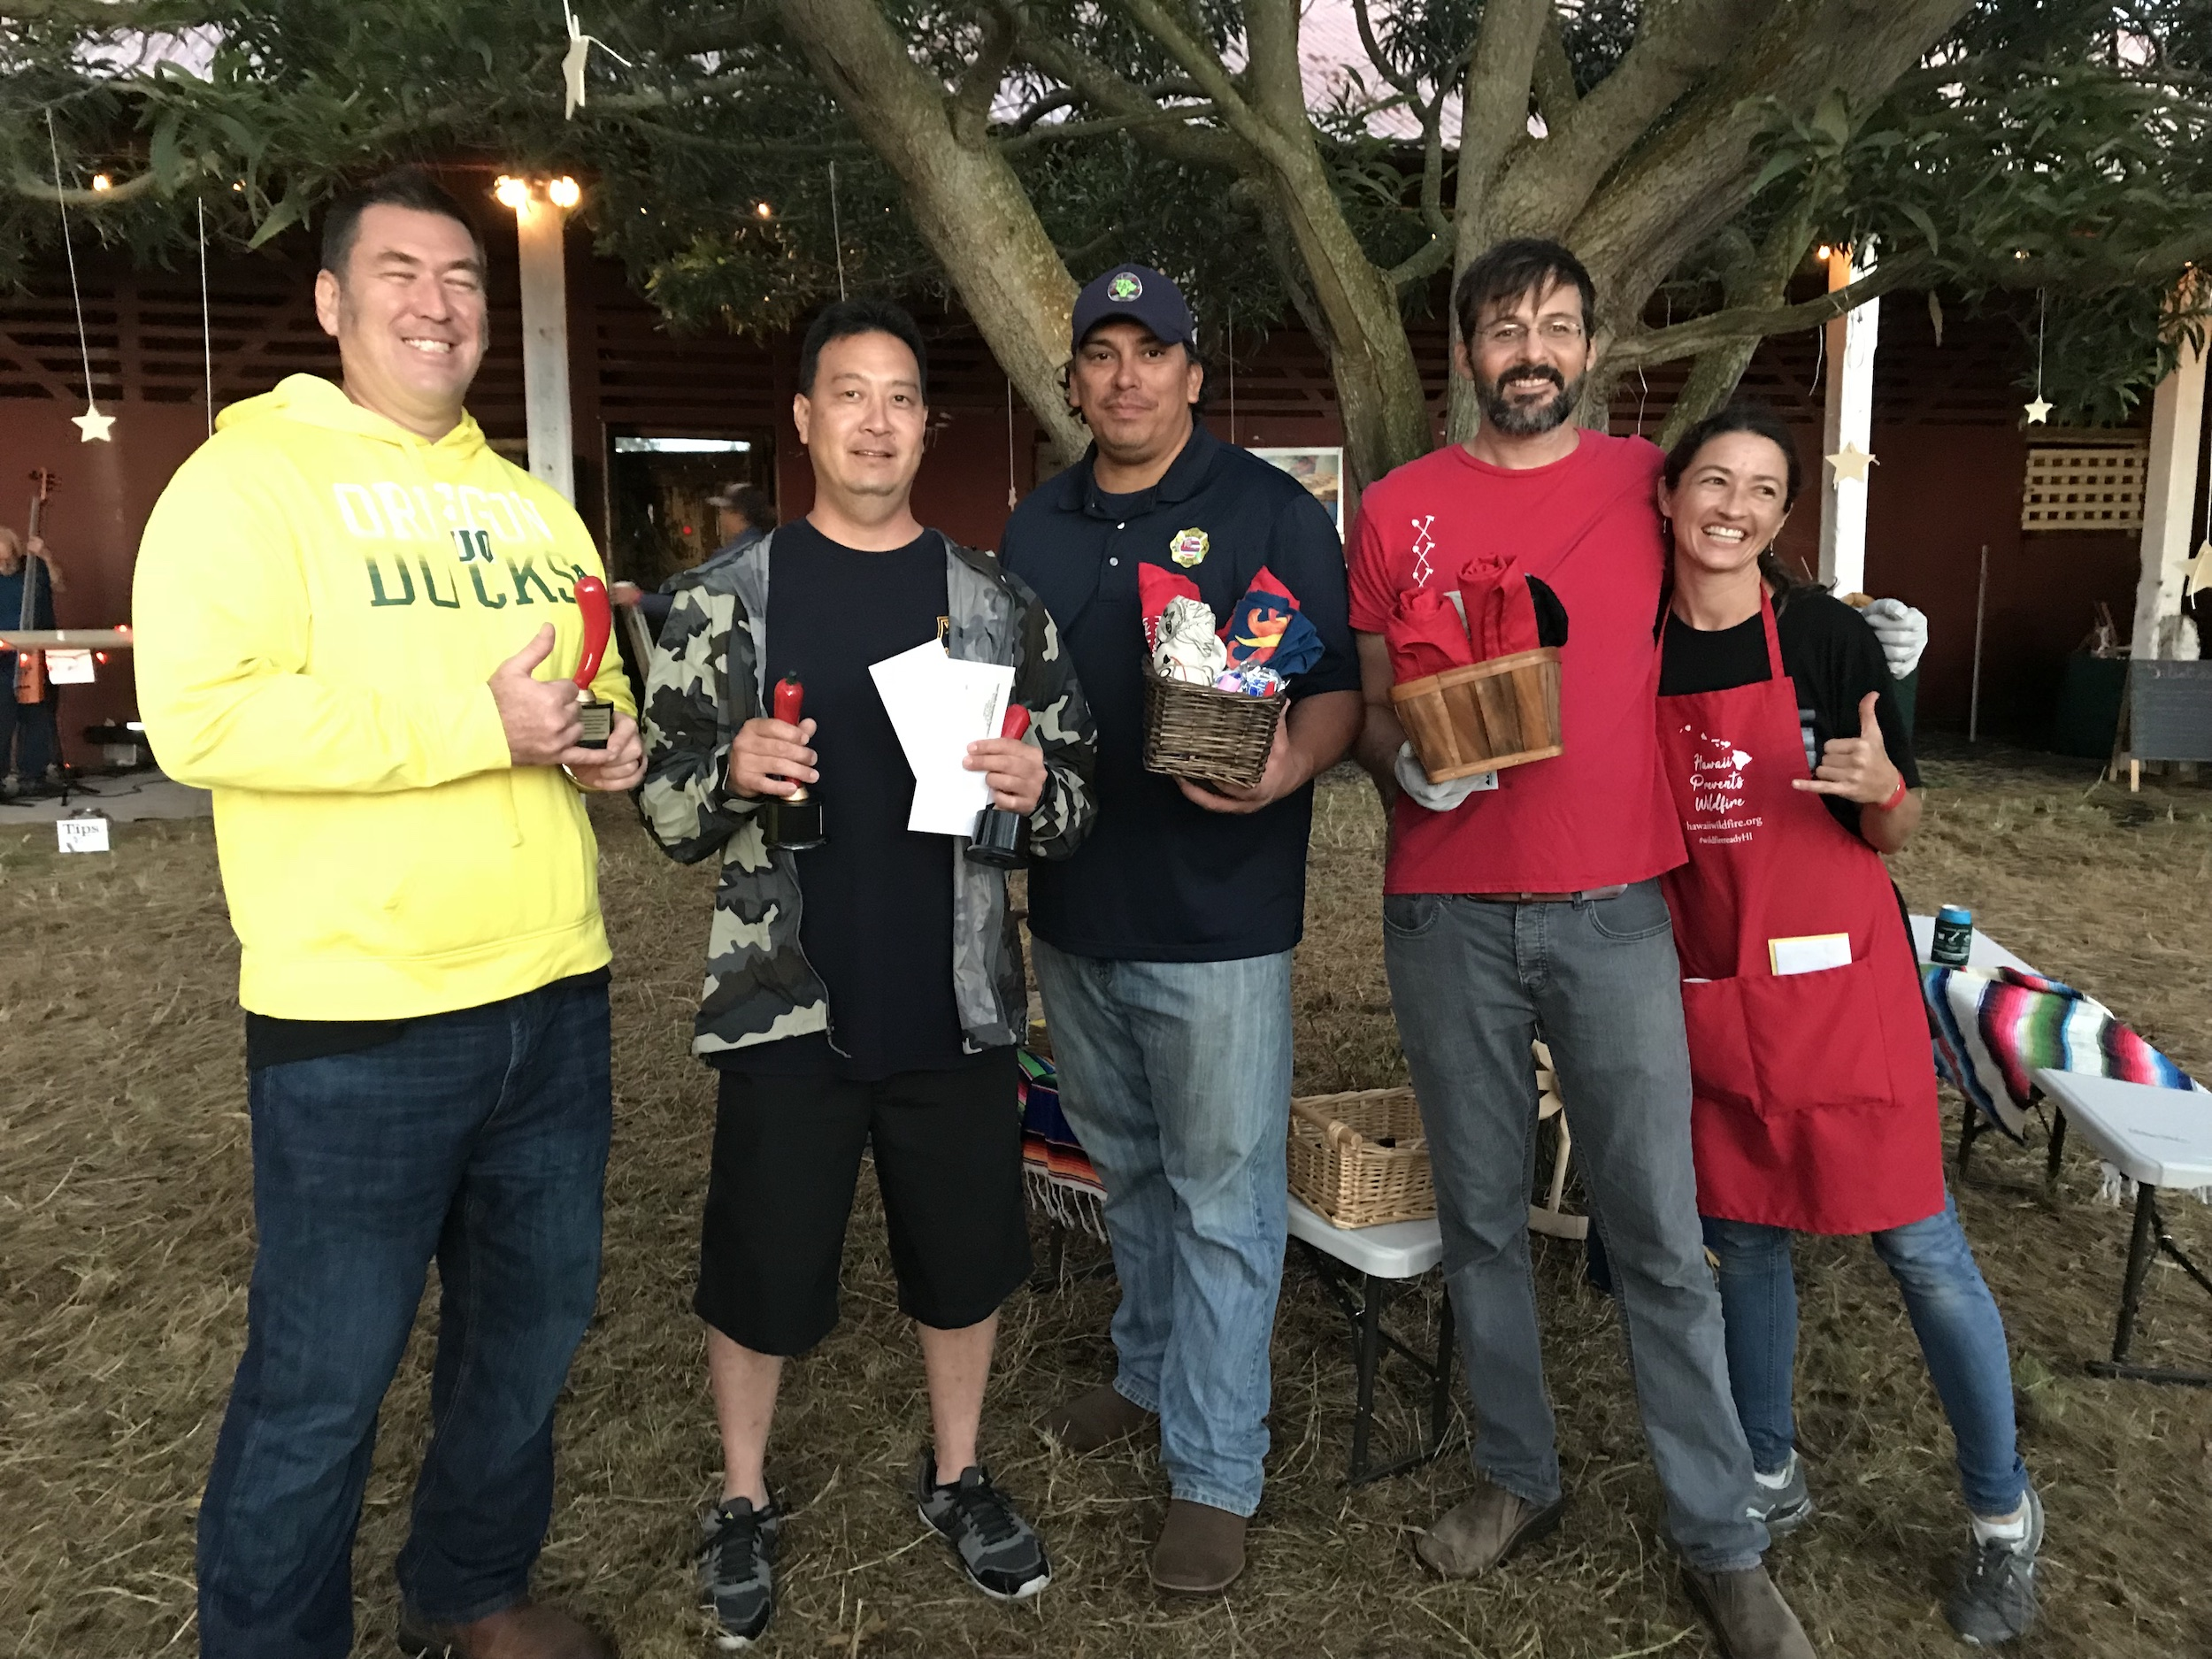 Team reps competed for coveted chili awards.